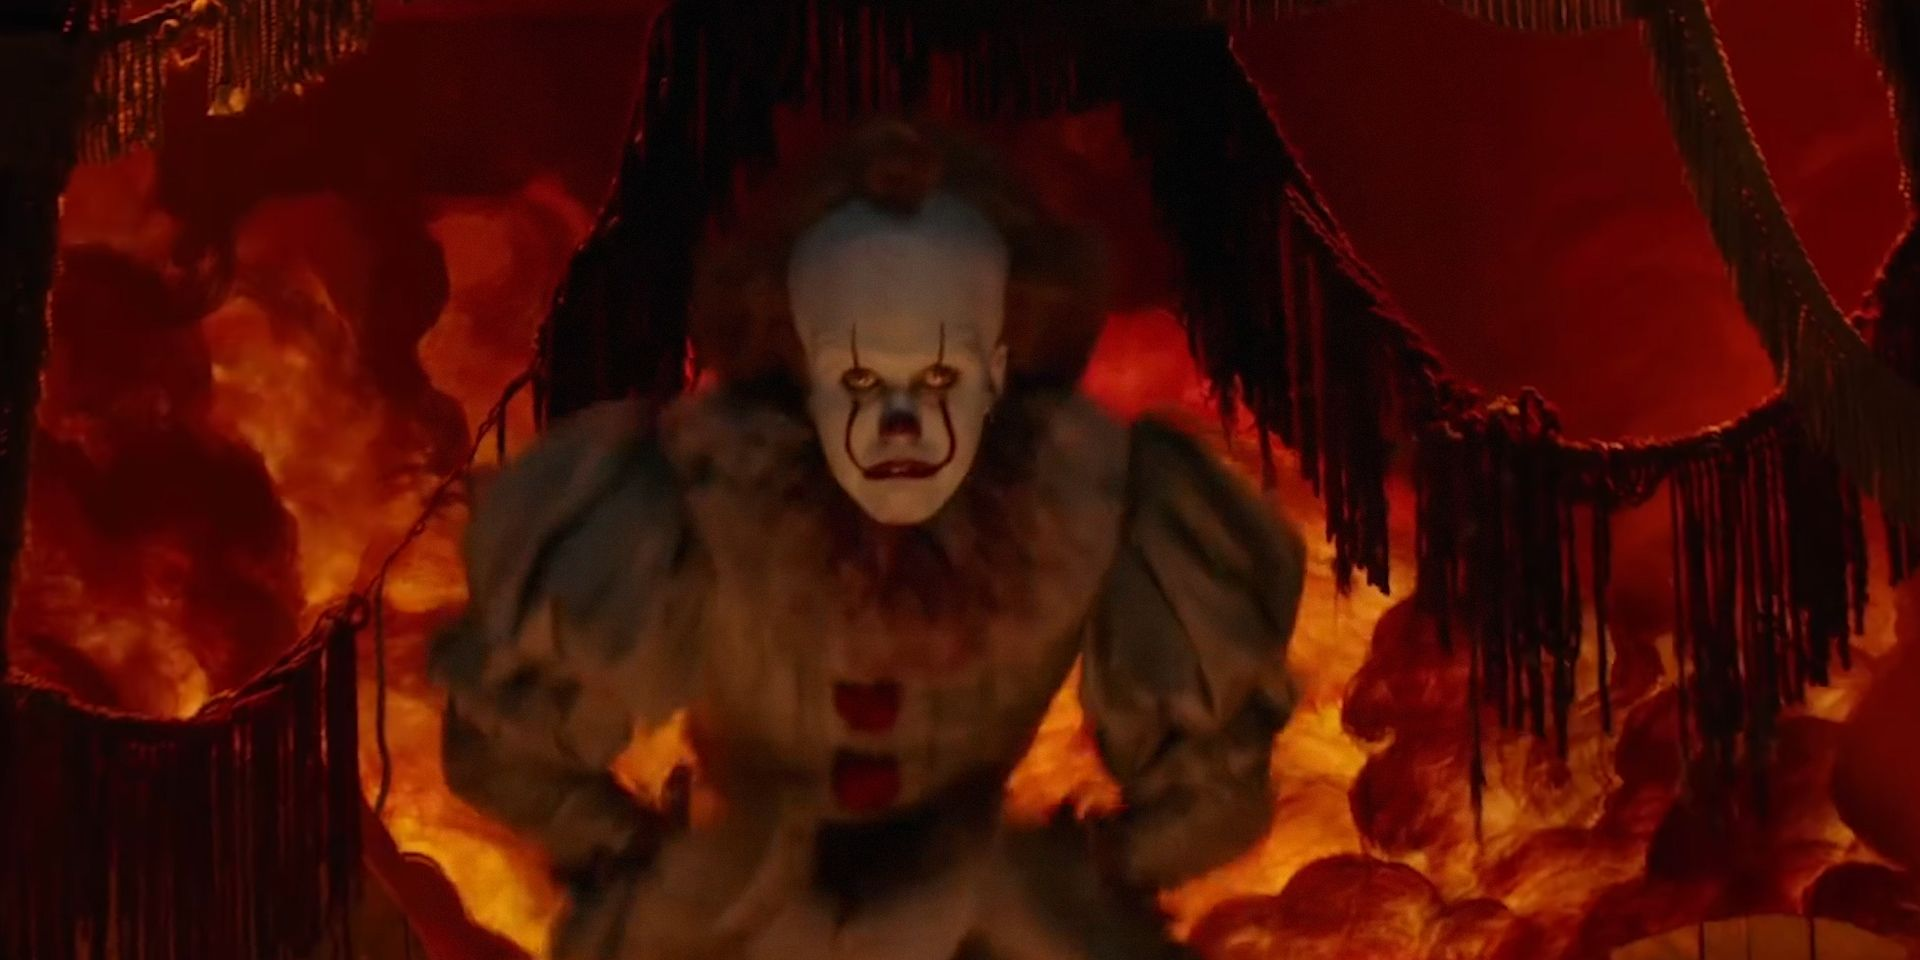 'It' isn't the only horror franchise that's risen from its grave.